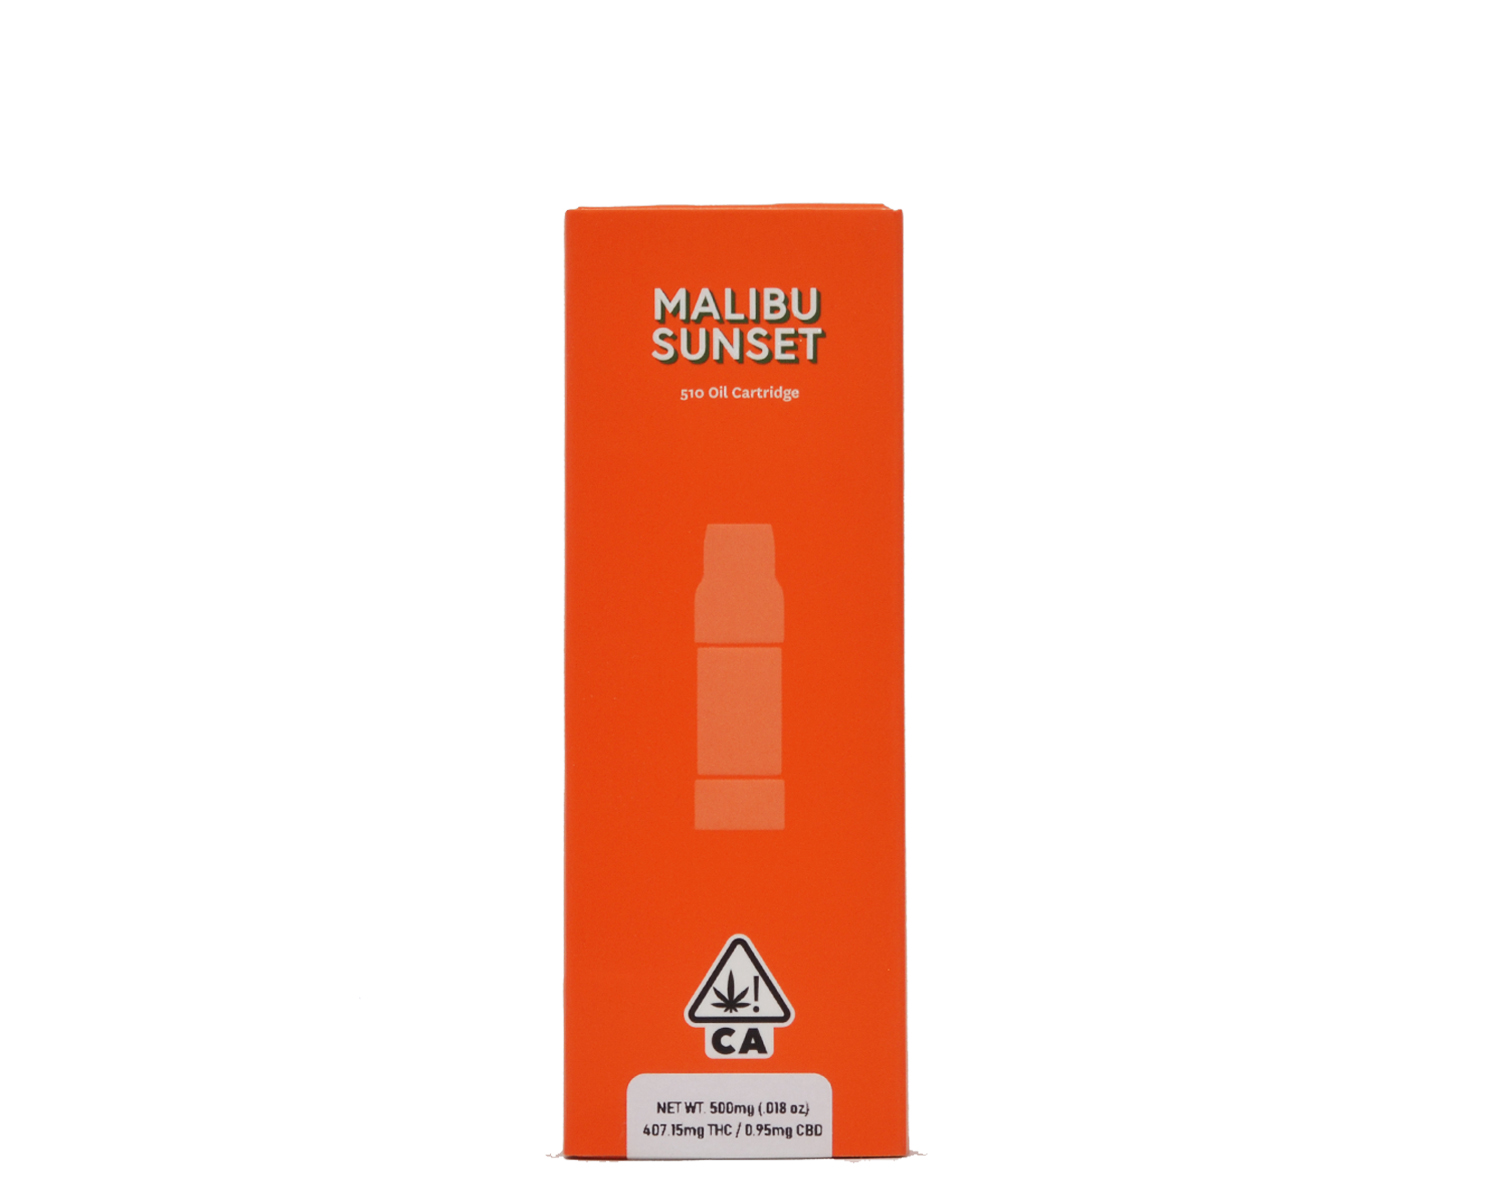 Sherbinskis Malibu Sunset Sauce Cartridge 1g  81.43% THC .19% CBD  This indica-leaning strain's fragrant earthy aroma makes for a full sensory experience. The harmonious wave of pineapple and coconut makes for a perfect nightcap. Its dreamy smoke carries you towards a more tranquil state of mind and relieves sleeplessness and what ails you. 500mg